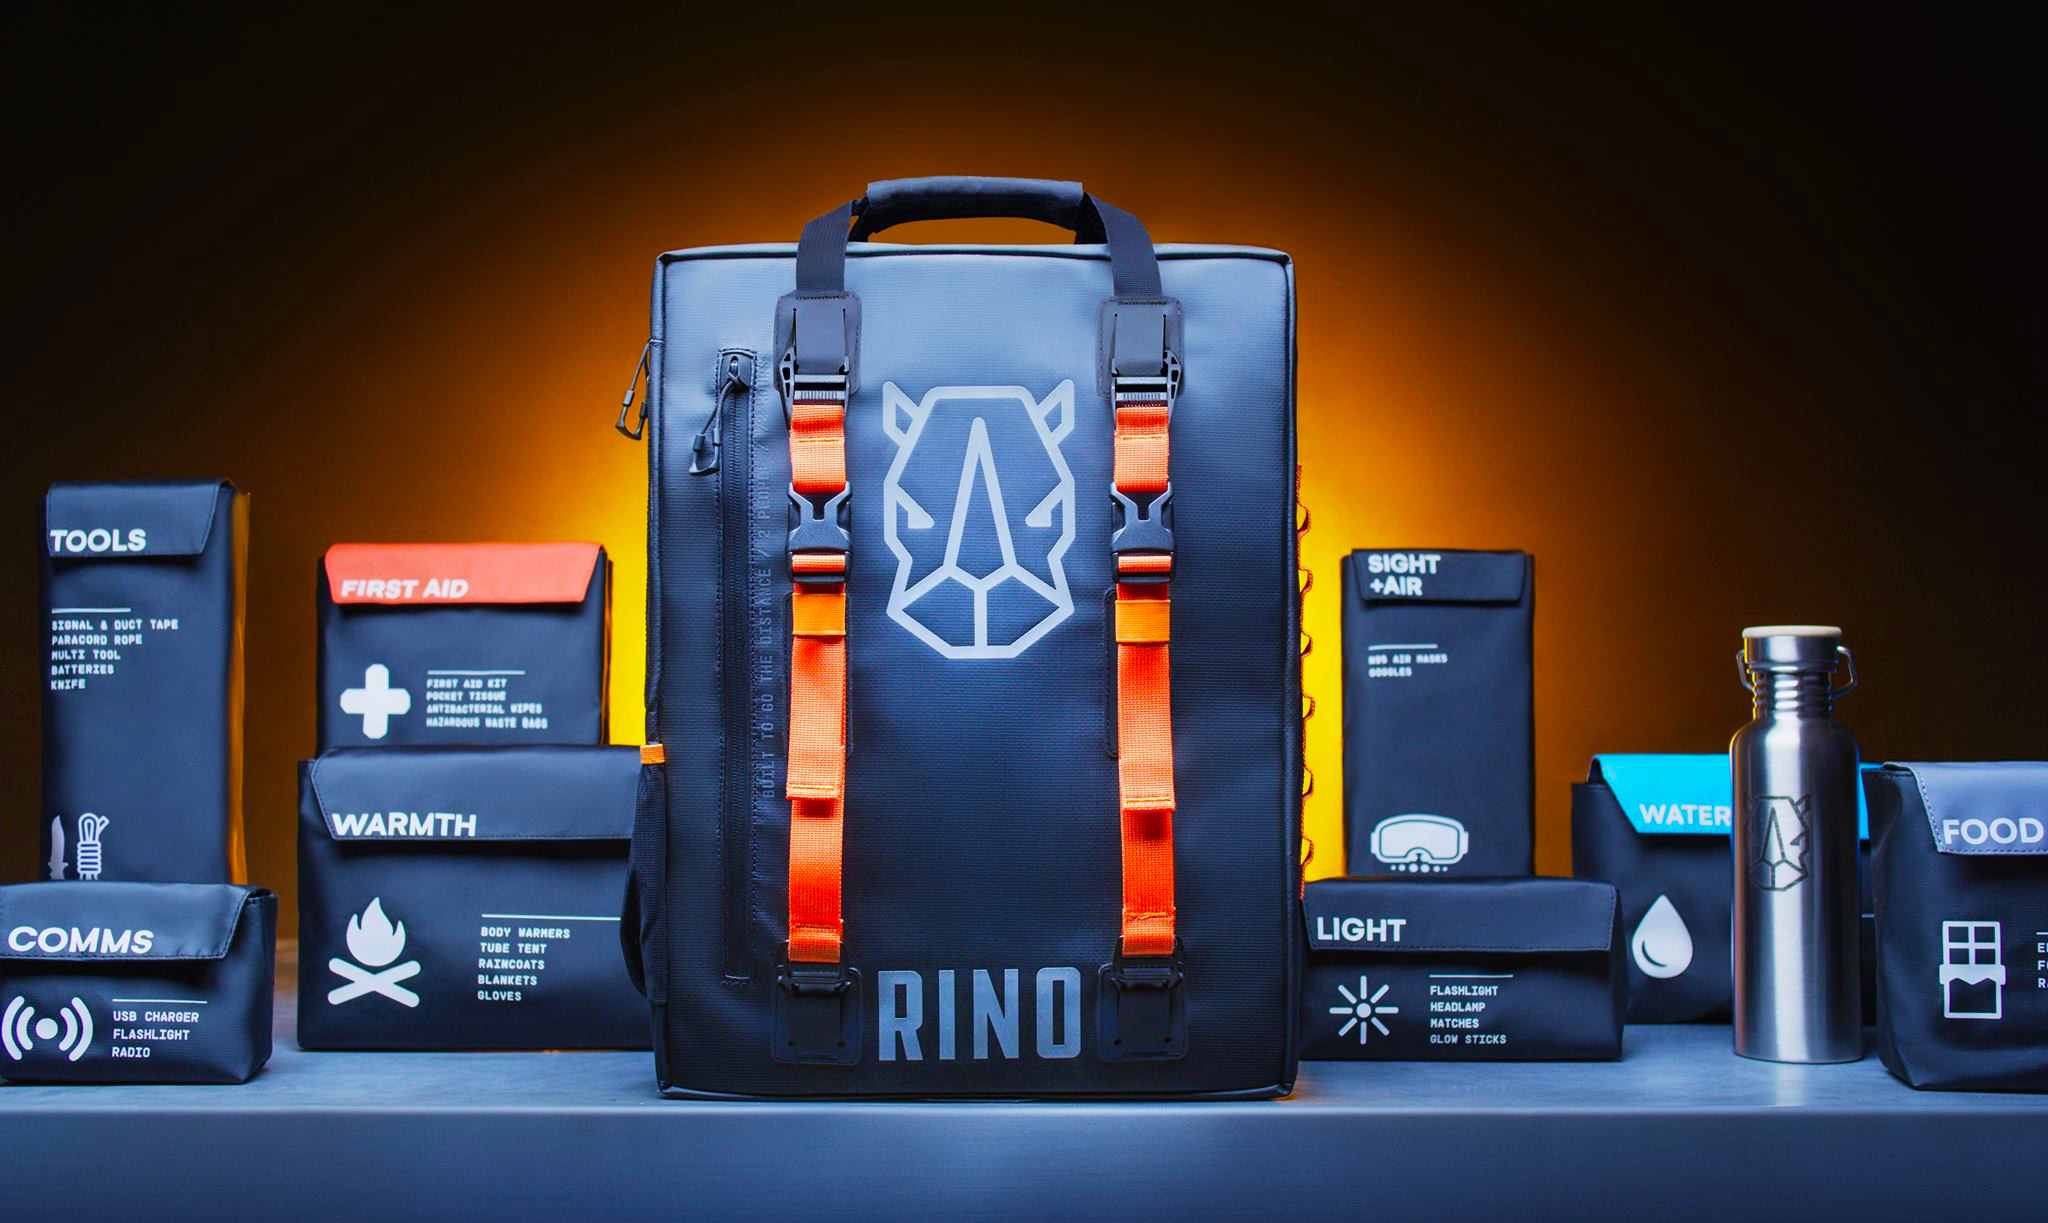 This is the World's Most Advanced 72-Hour Emergency Survival System at werd.com